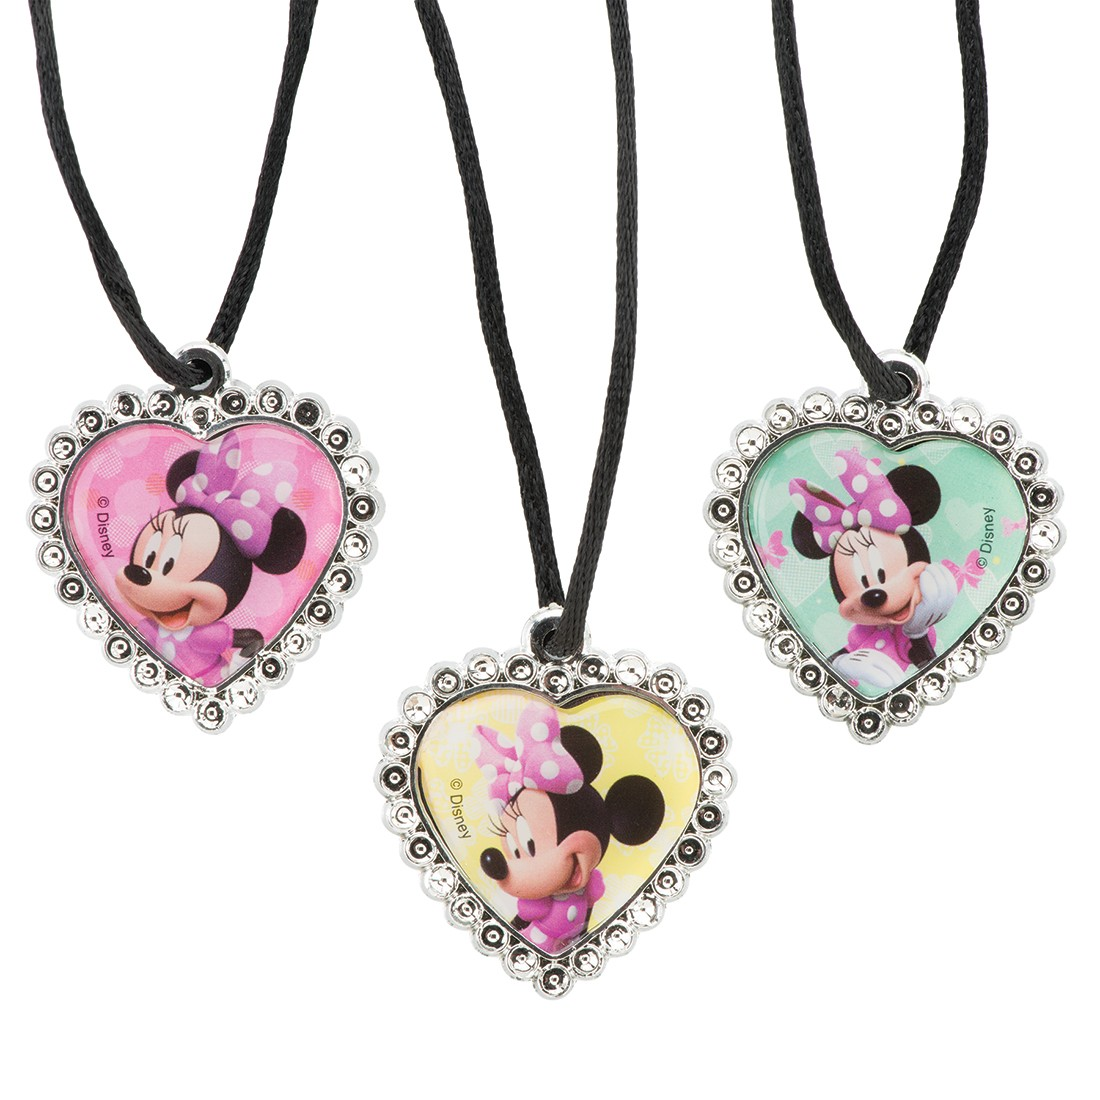 Minnie Mouse Jewel Heart Necklaces [image]